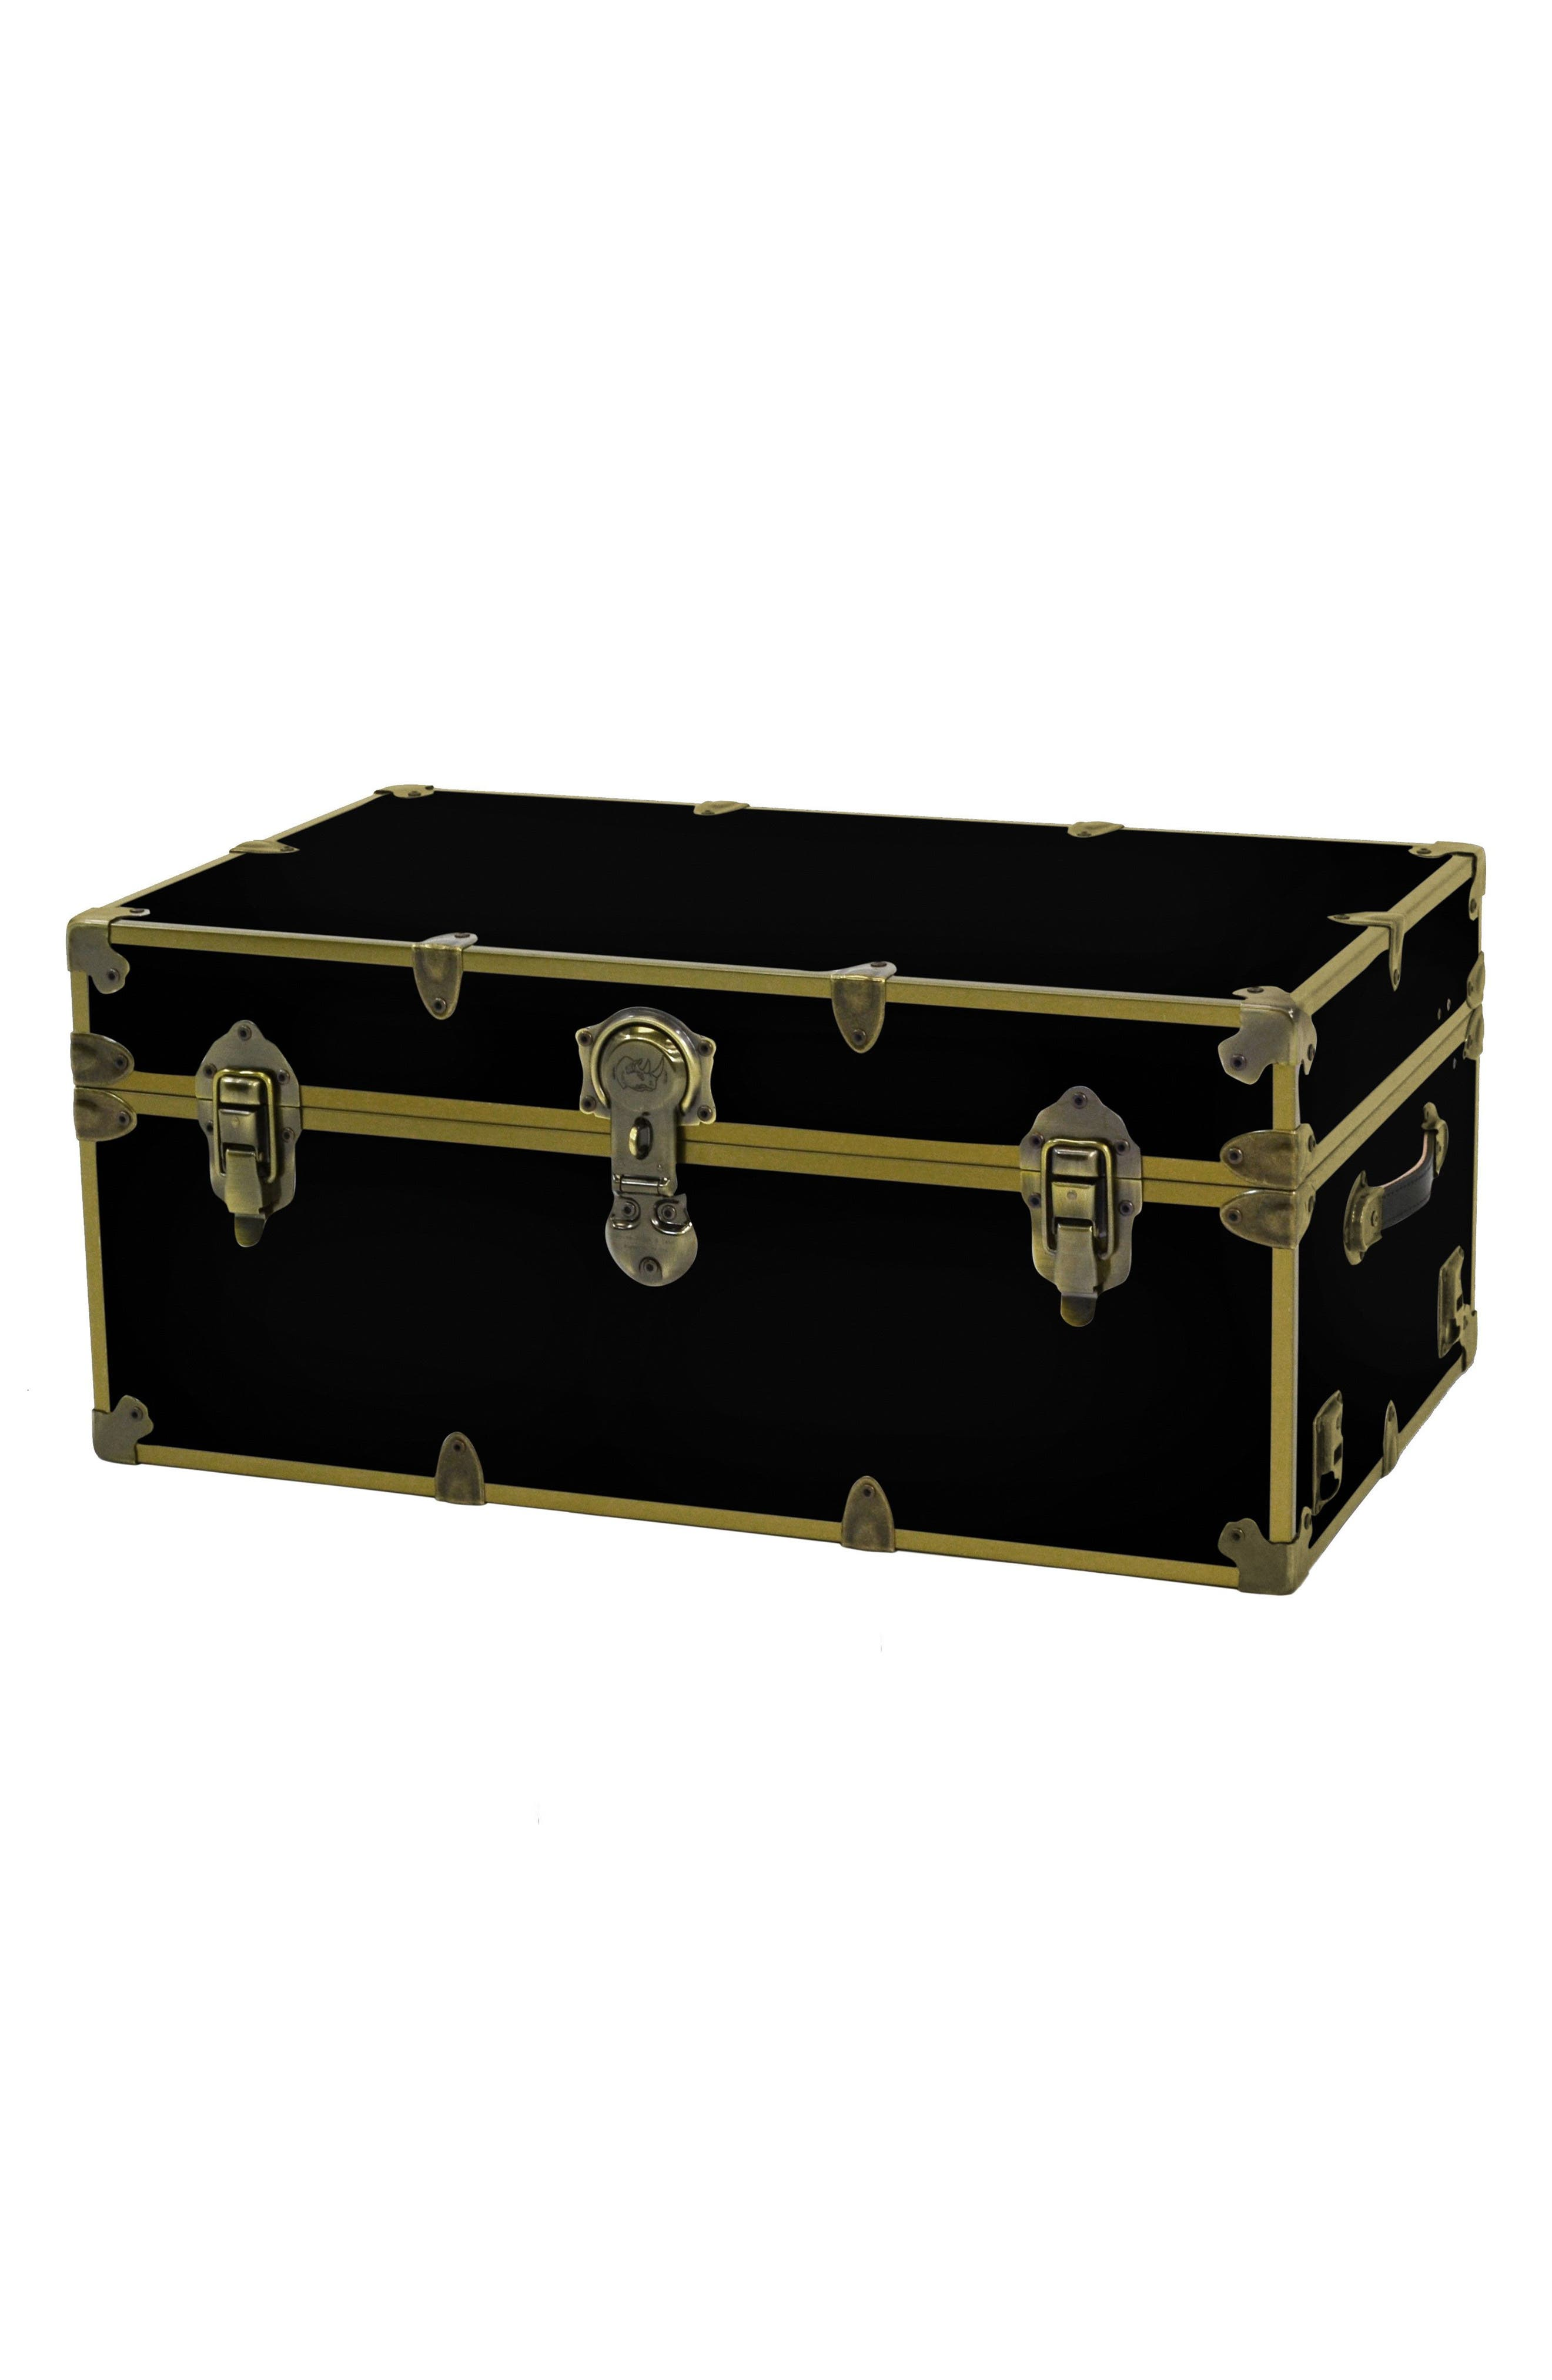 Rhino Trunk  Case Large Brass Armor Trunk Size One Size  Black